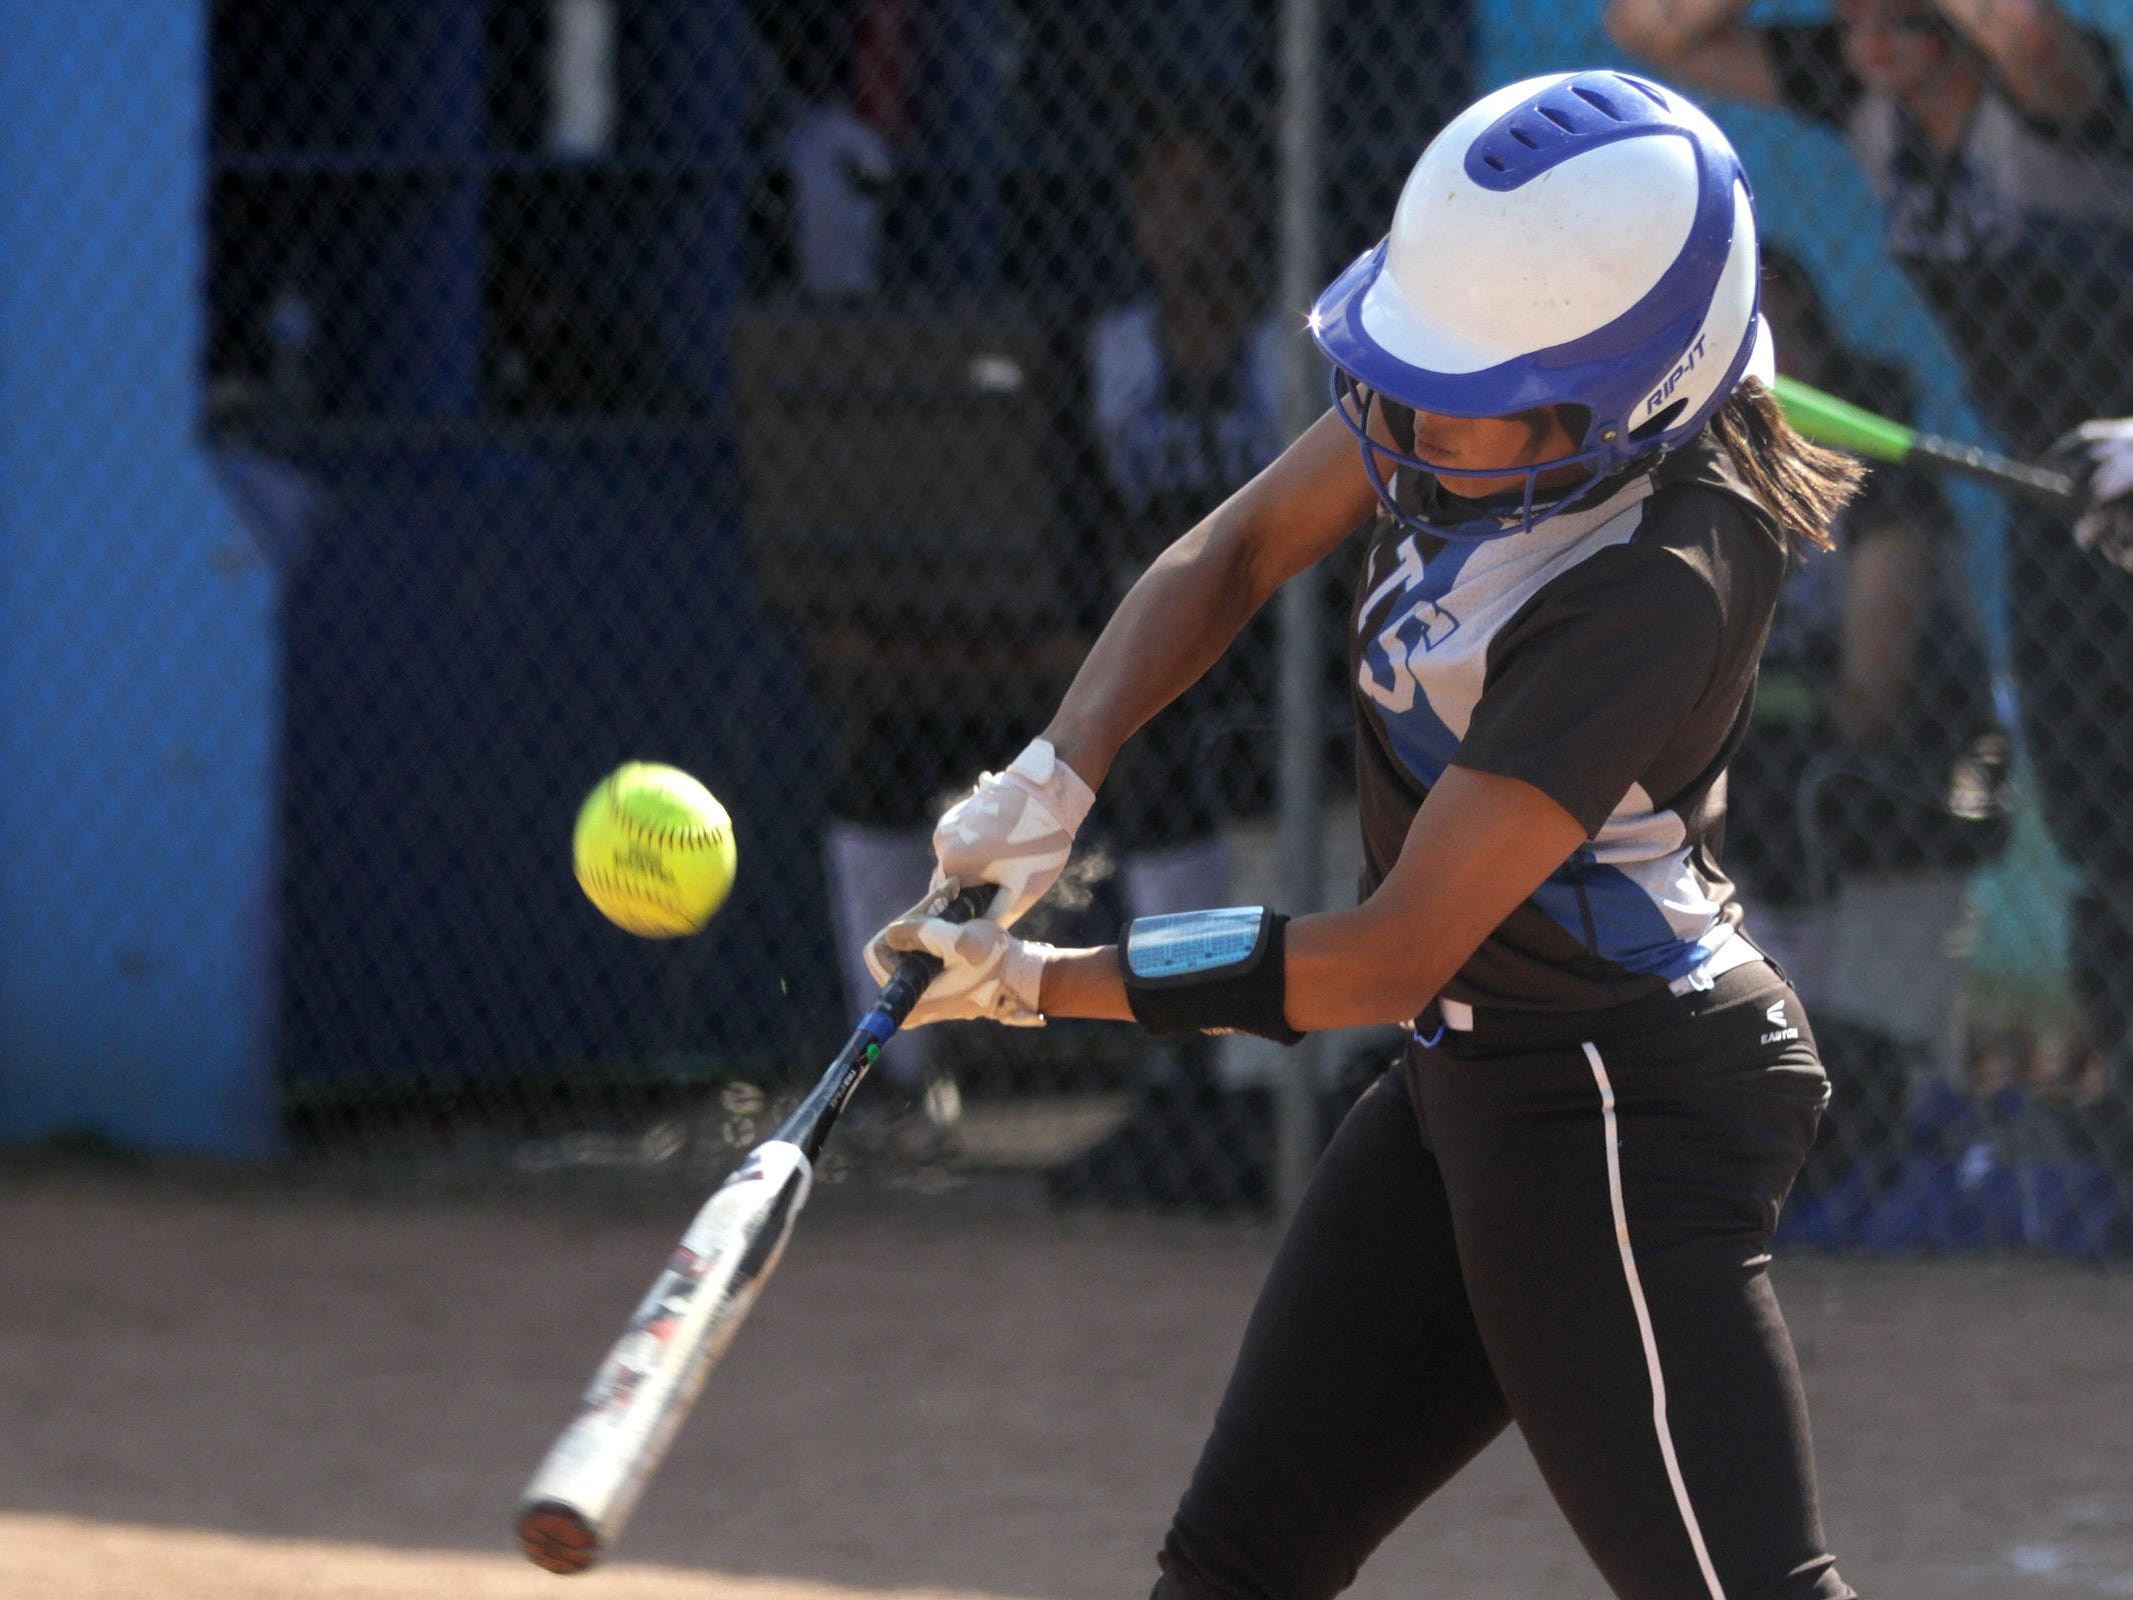 McNary's Kimi Ito (1) bats in the Gresham vs. McNary softball game, in the first round of the OSAA class 6A state playoffs, at McNary High School in Keizer on Monday, May 25, 2015. McNary won the game 11-7.